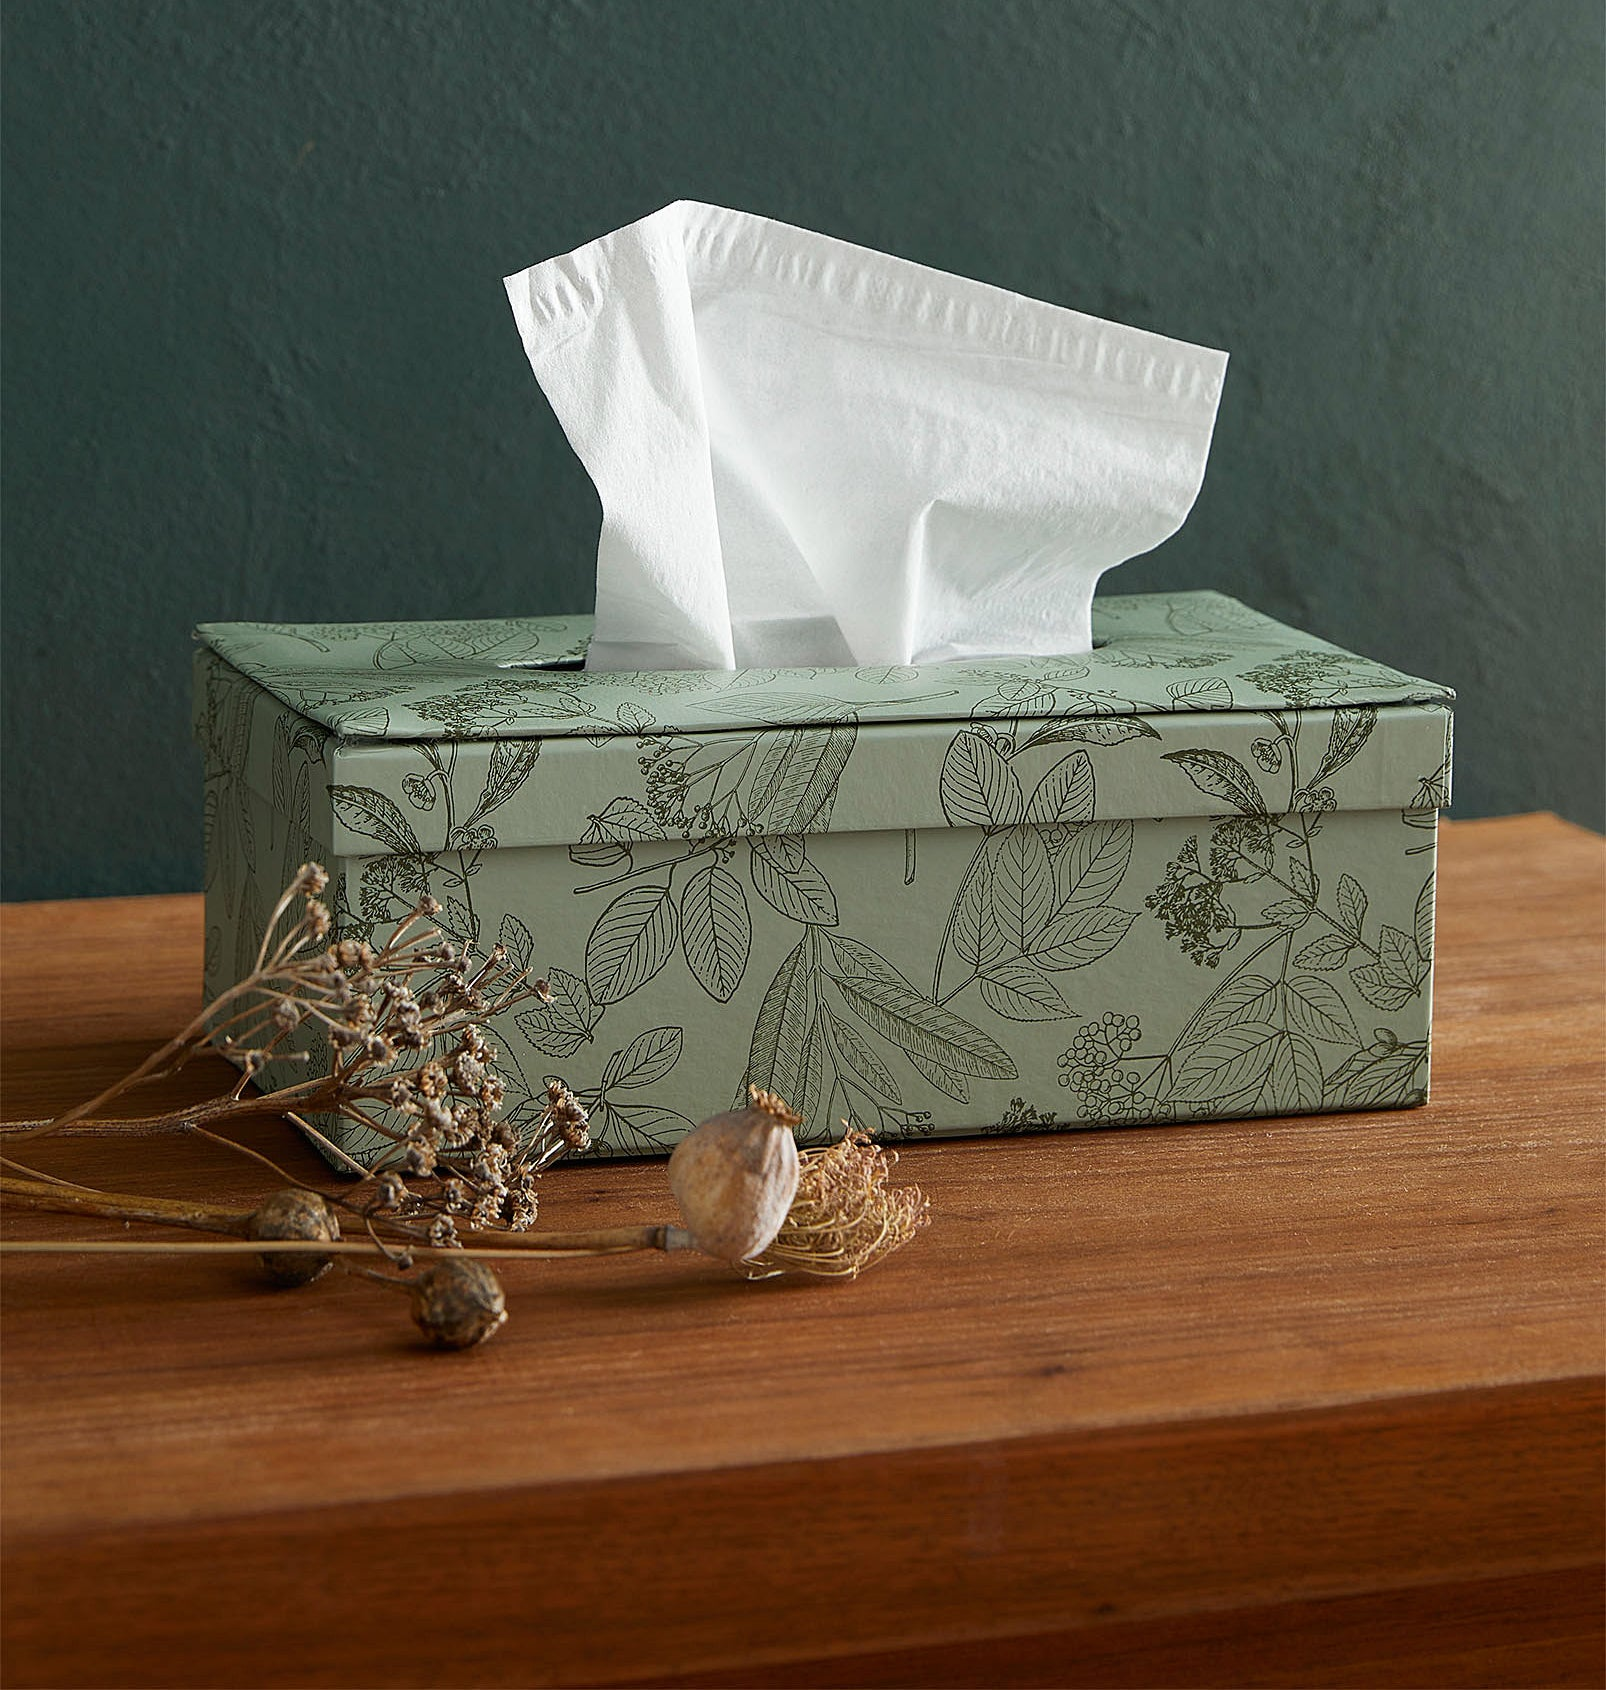 A tissue box holder with a tissue sticking out of it